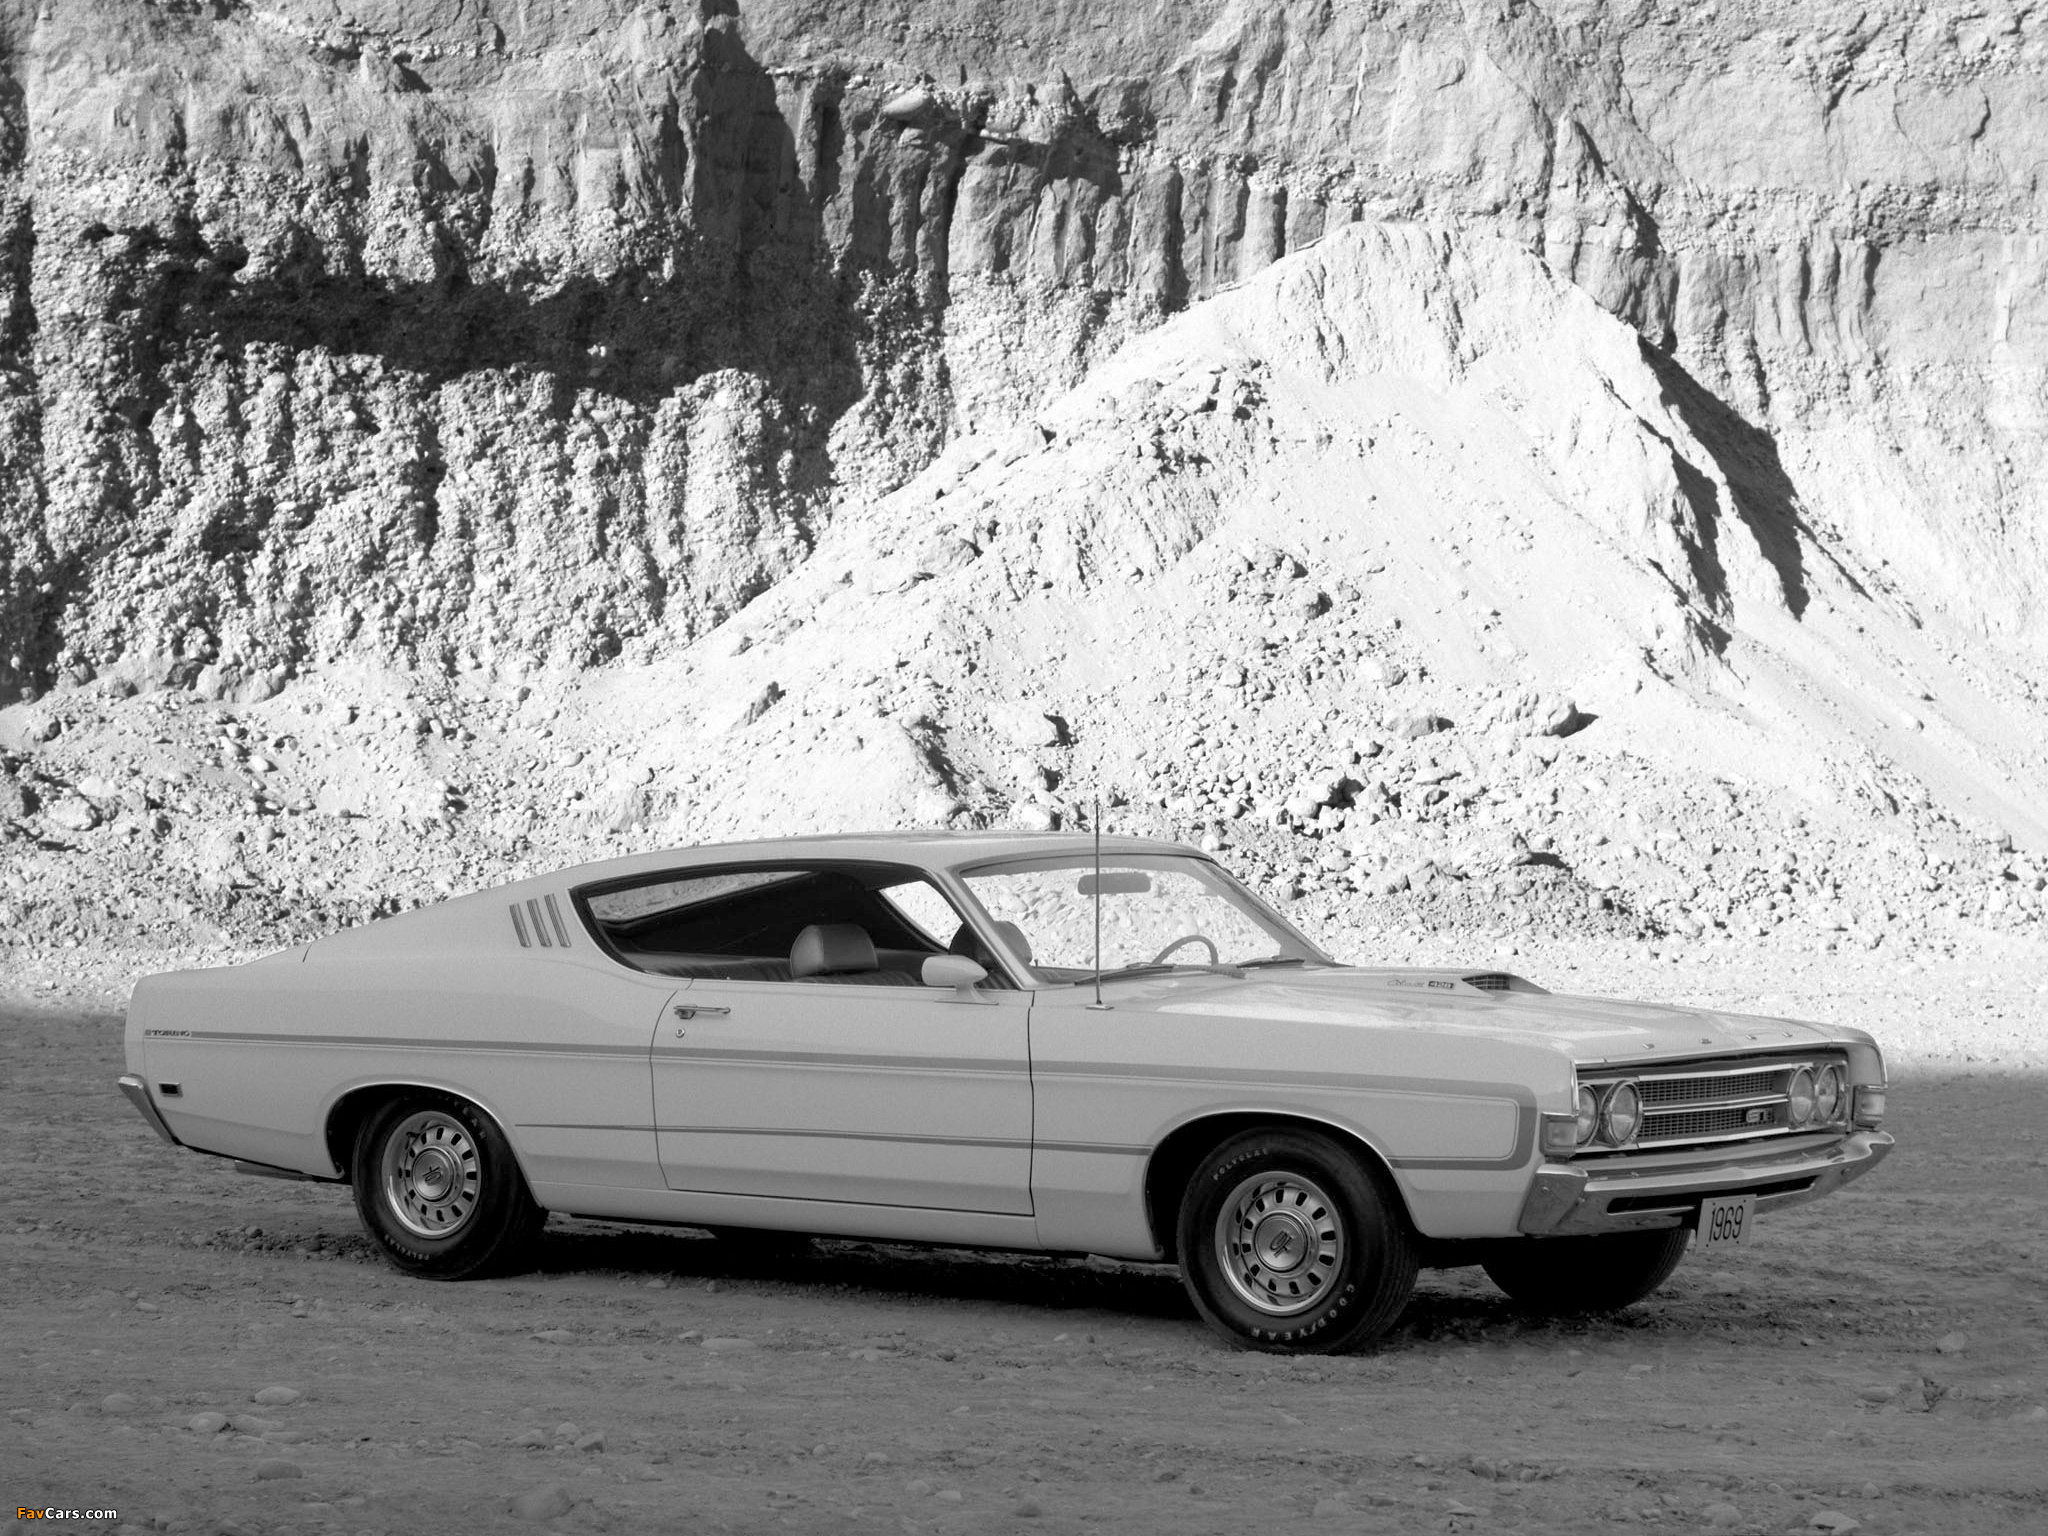 Ford Fairlane Torino Gt Sportsroof 1969 Pictures 2048x1536 Muscle Cars 2048 X 1536